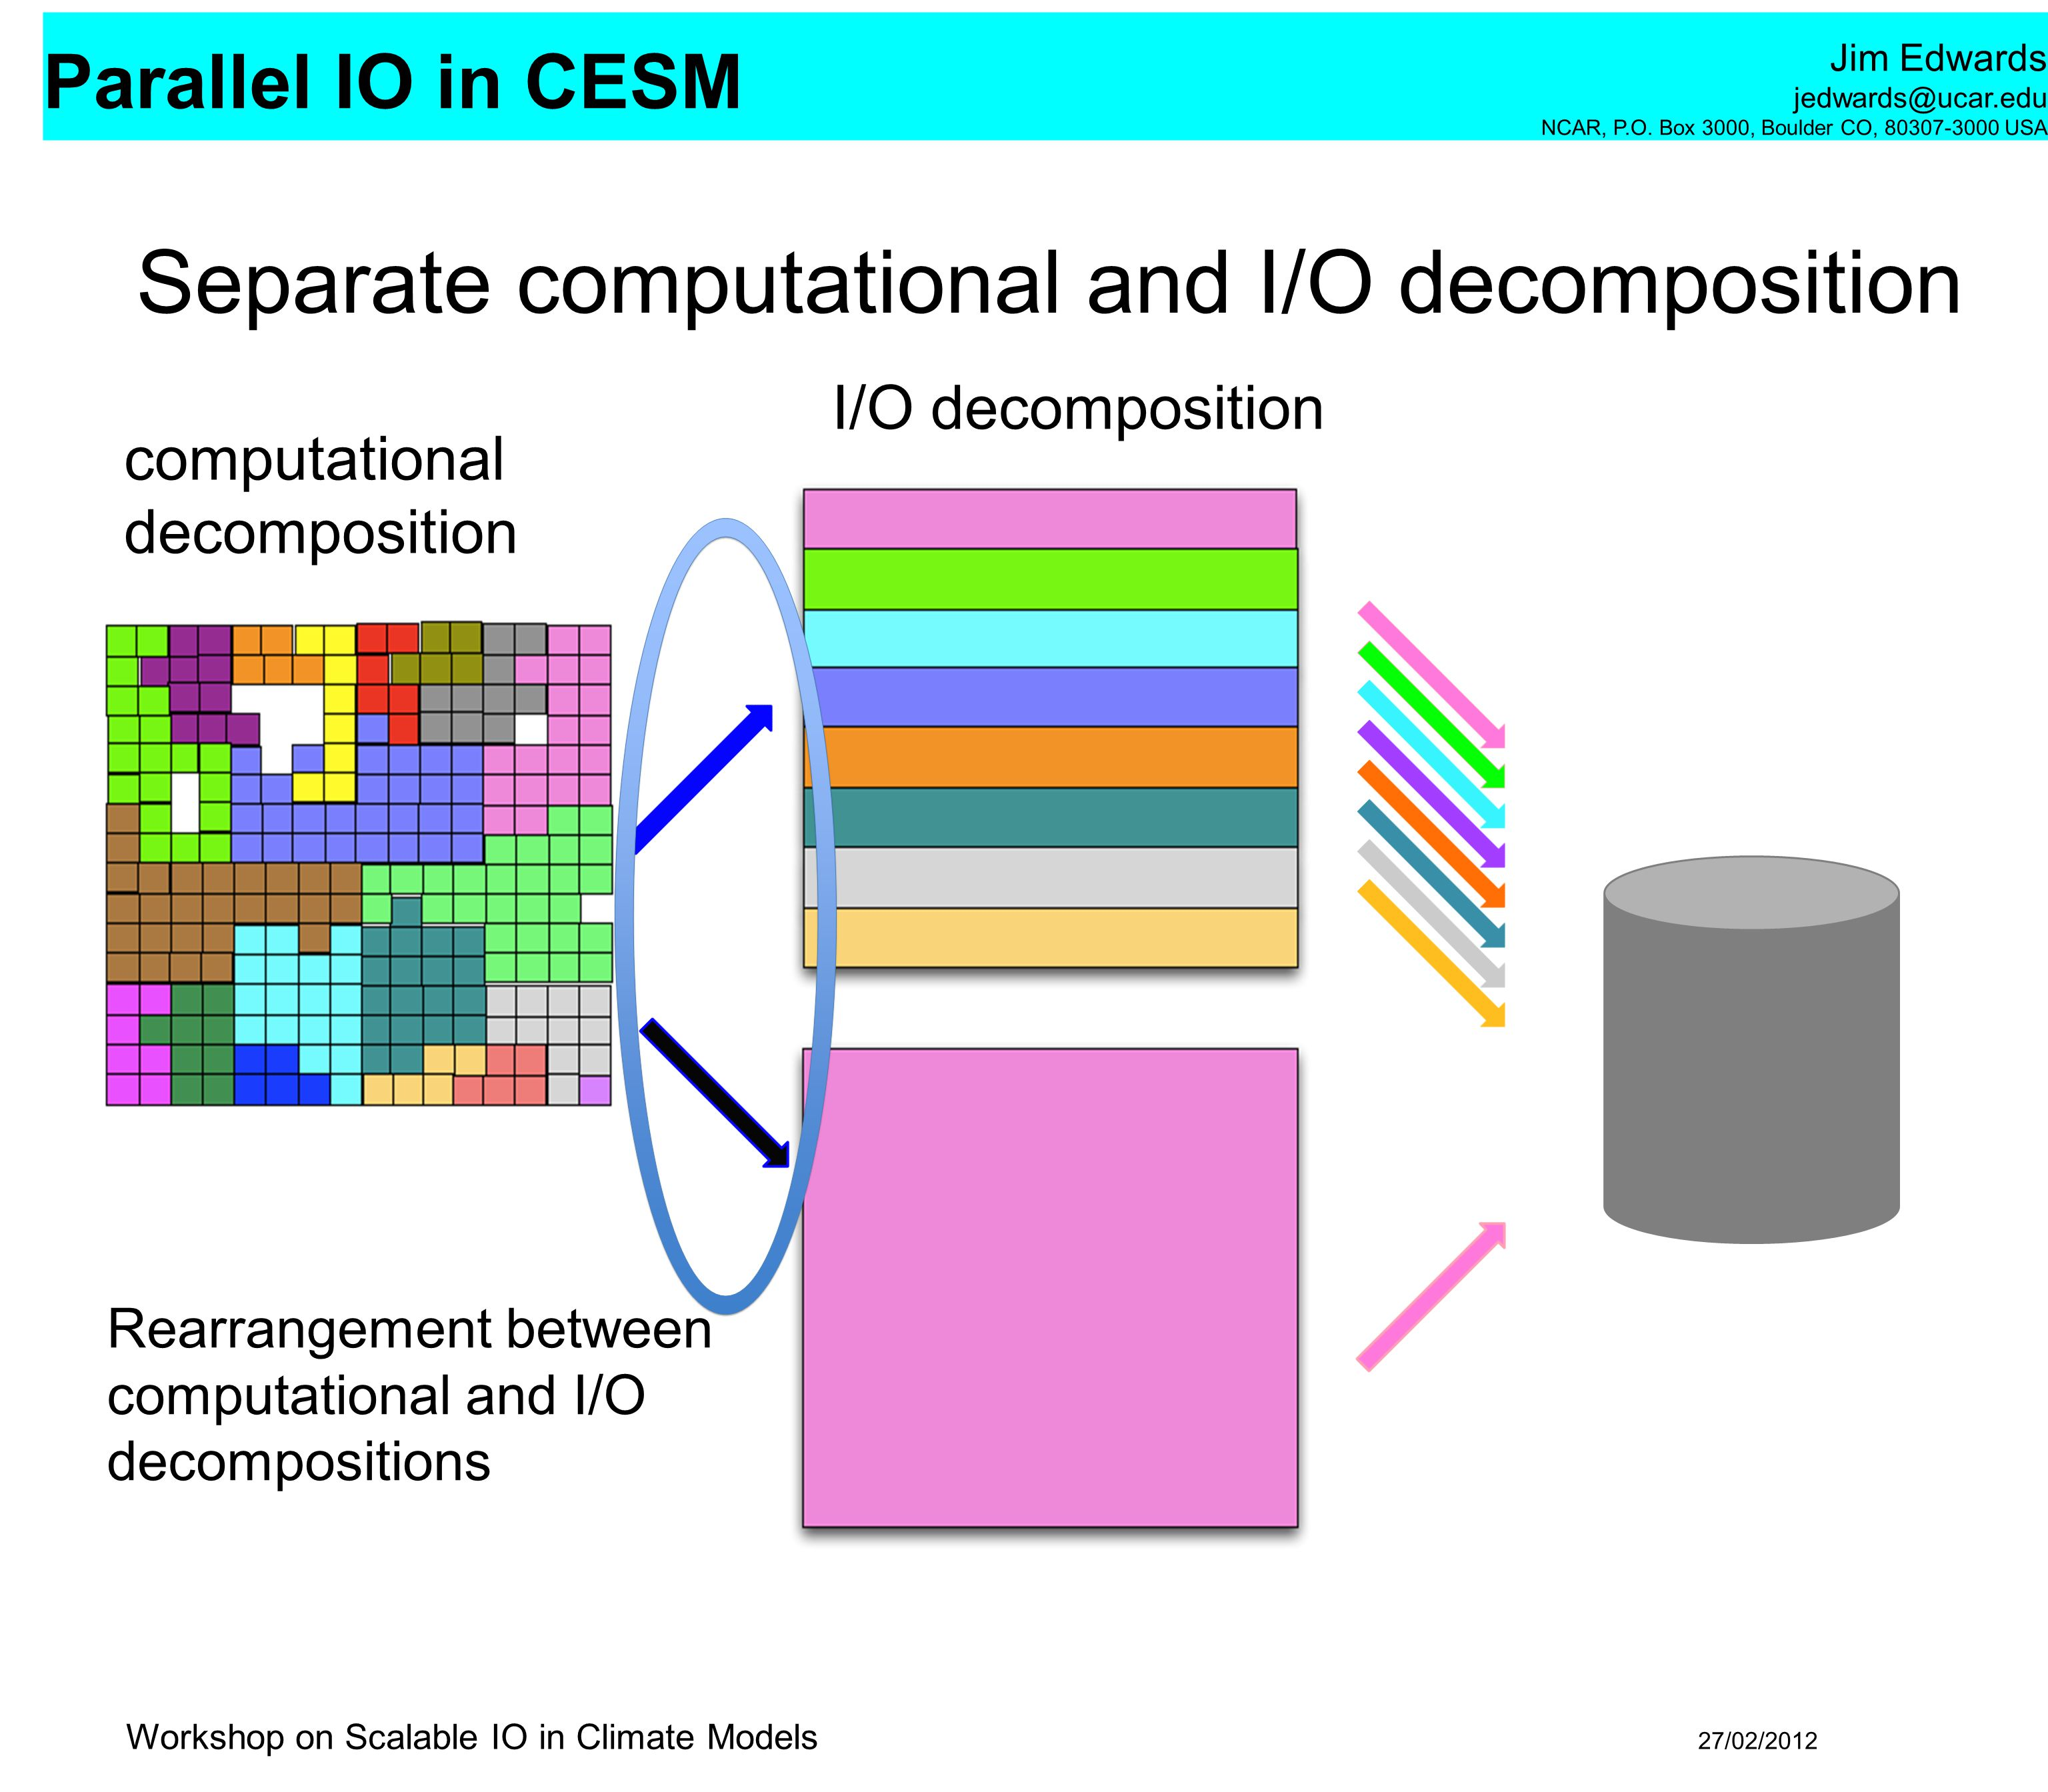 Separate computational and I/O decomposition